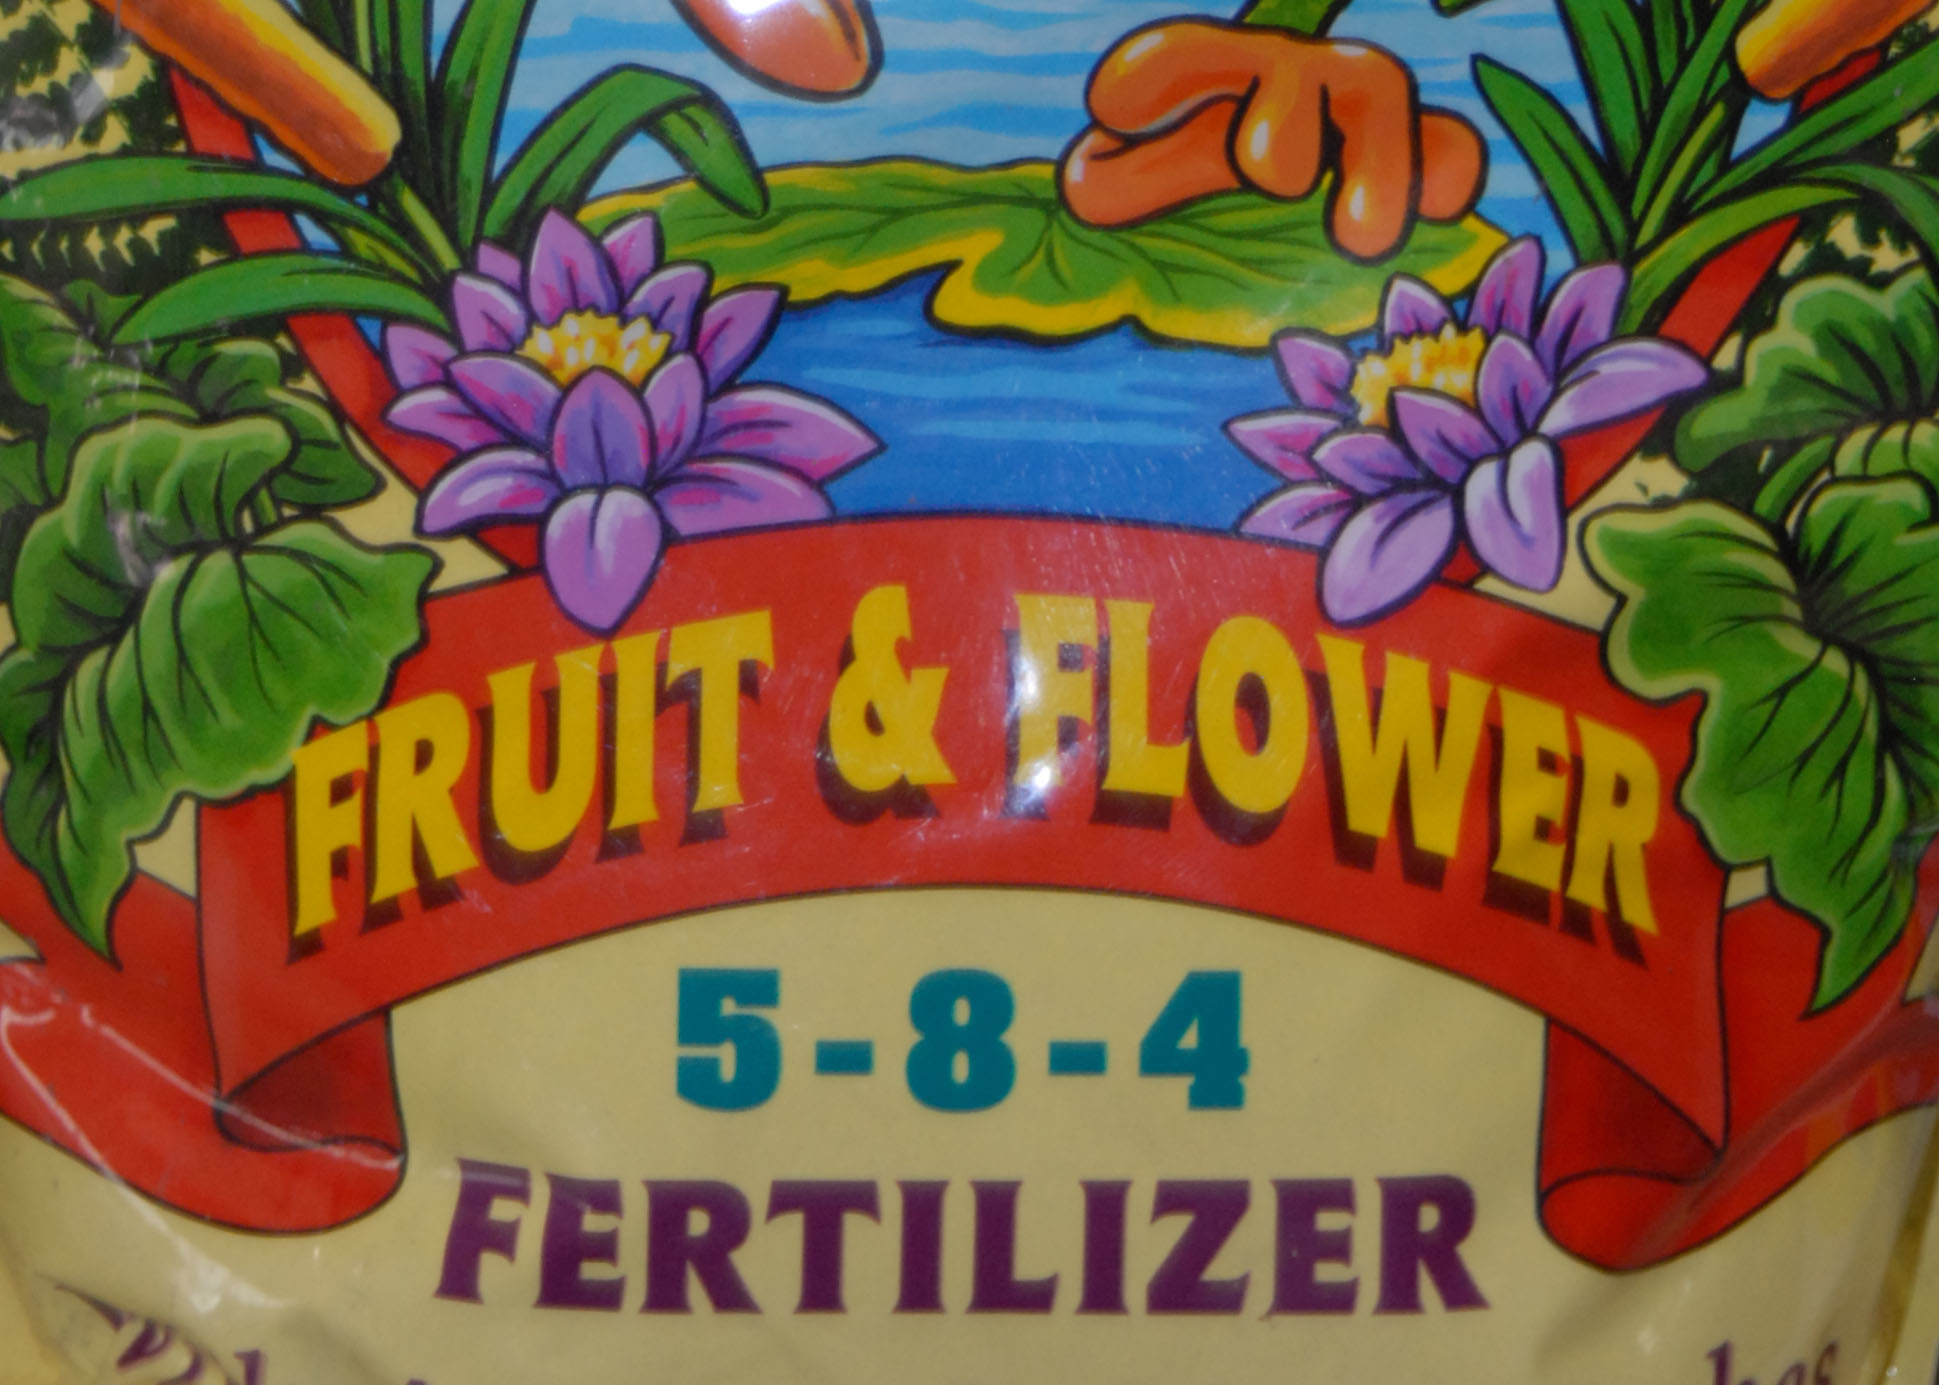 fruit and flower fertilizer.jpg thumbnail